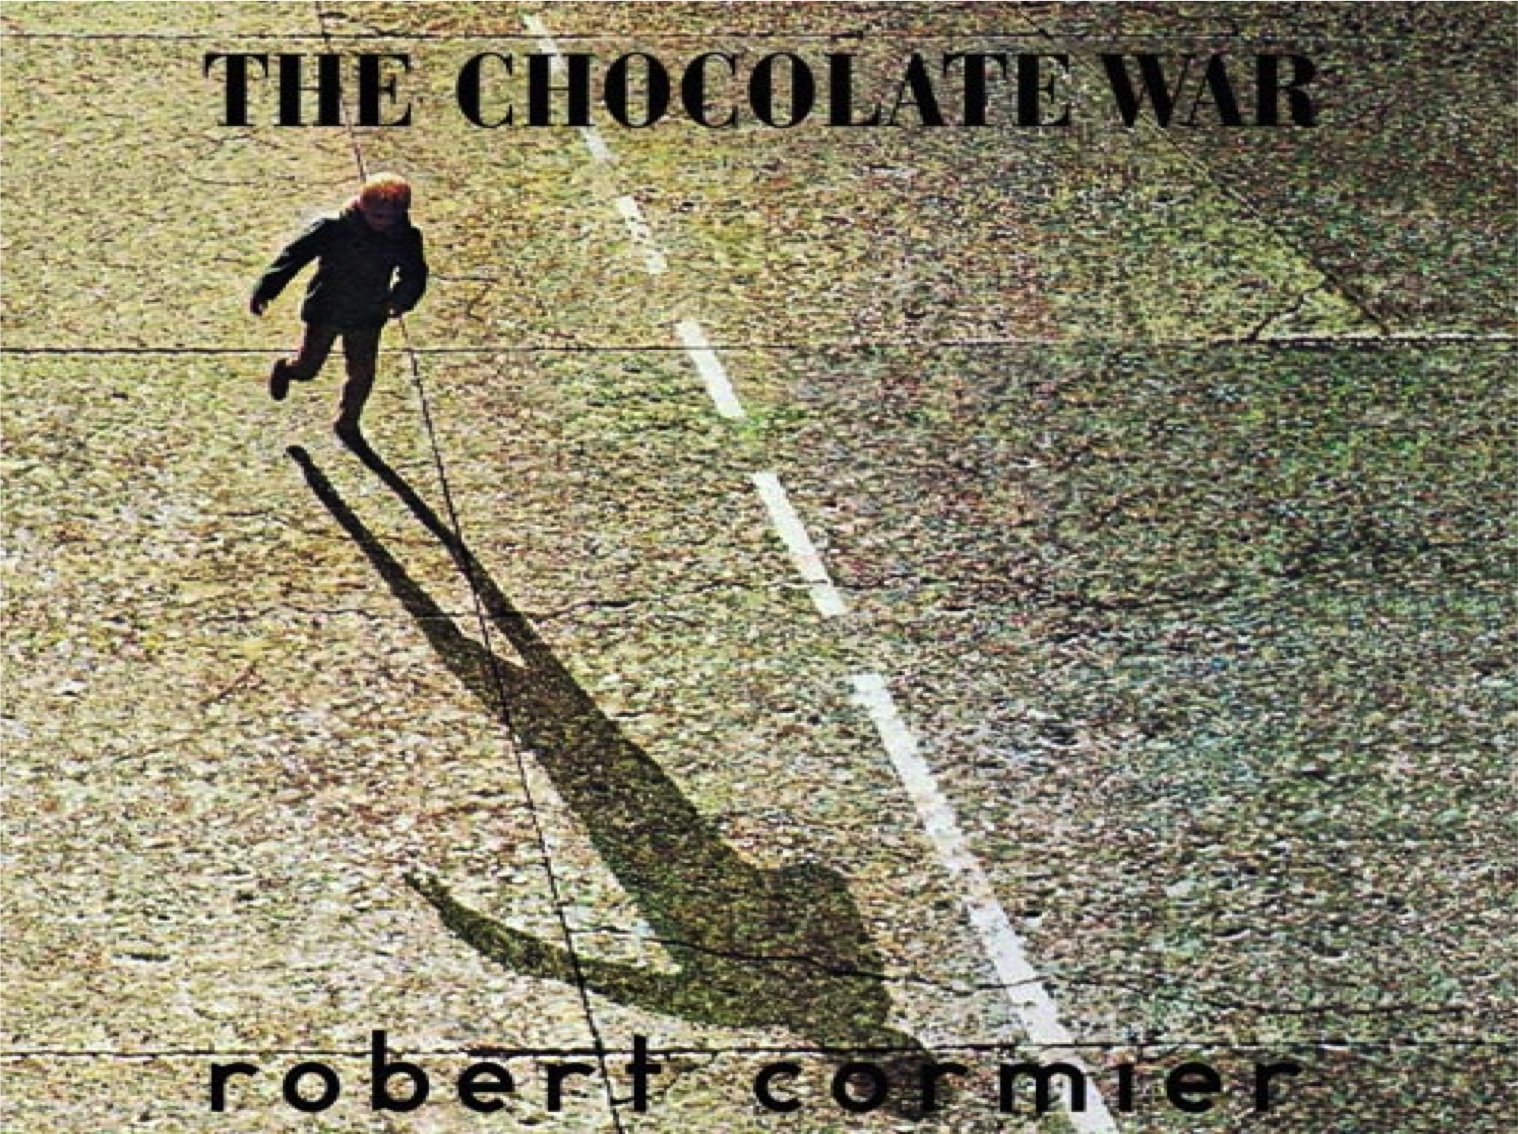 analytical essay the chocolate war